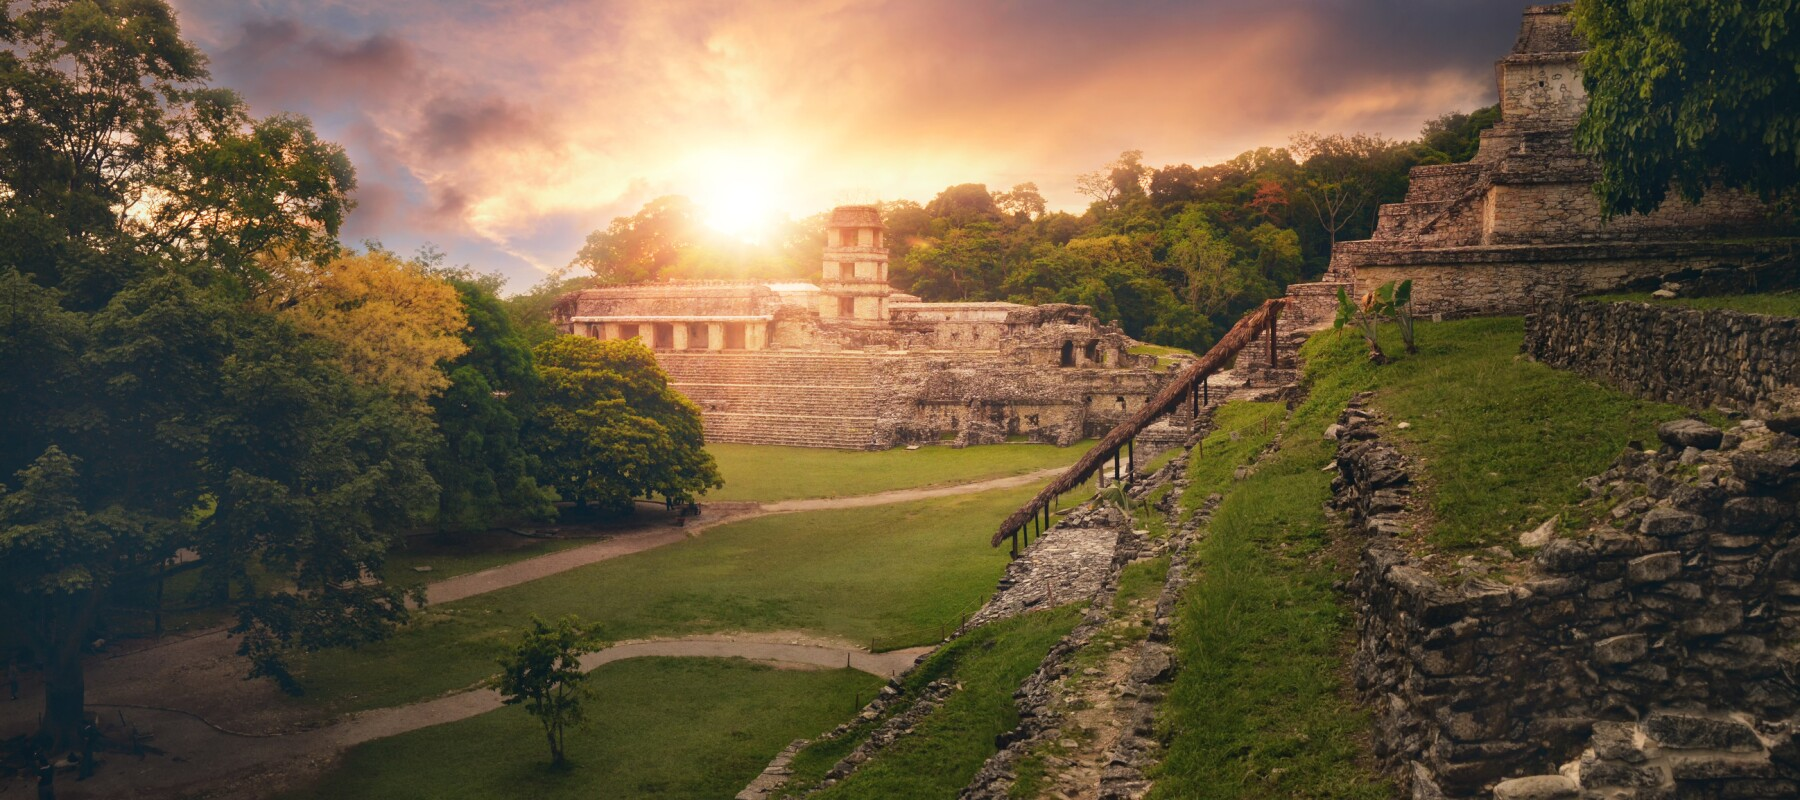 Panoramic view pyramid of Inscriptions and the Palace observatory. Mexico Tren Maya